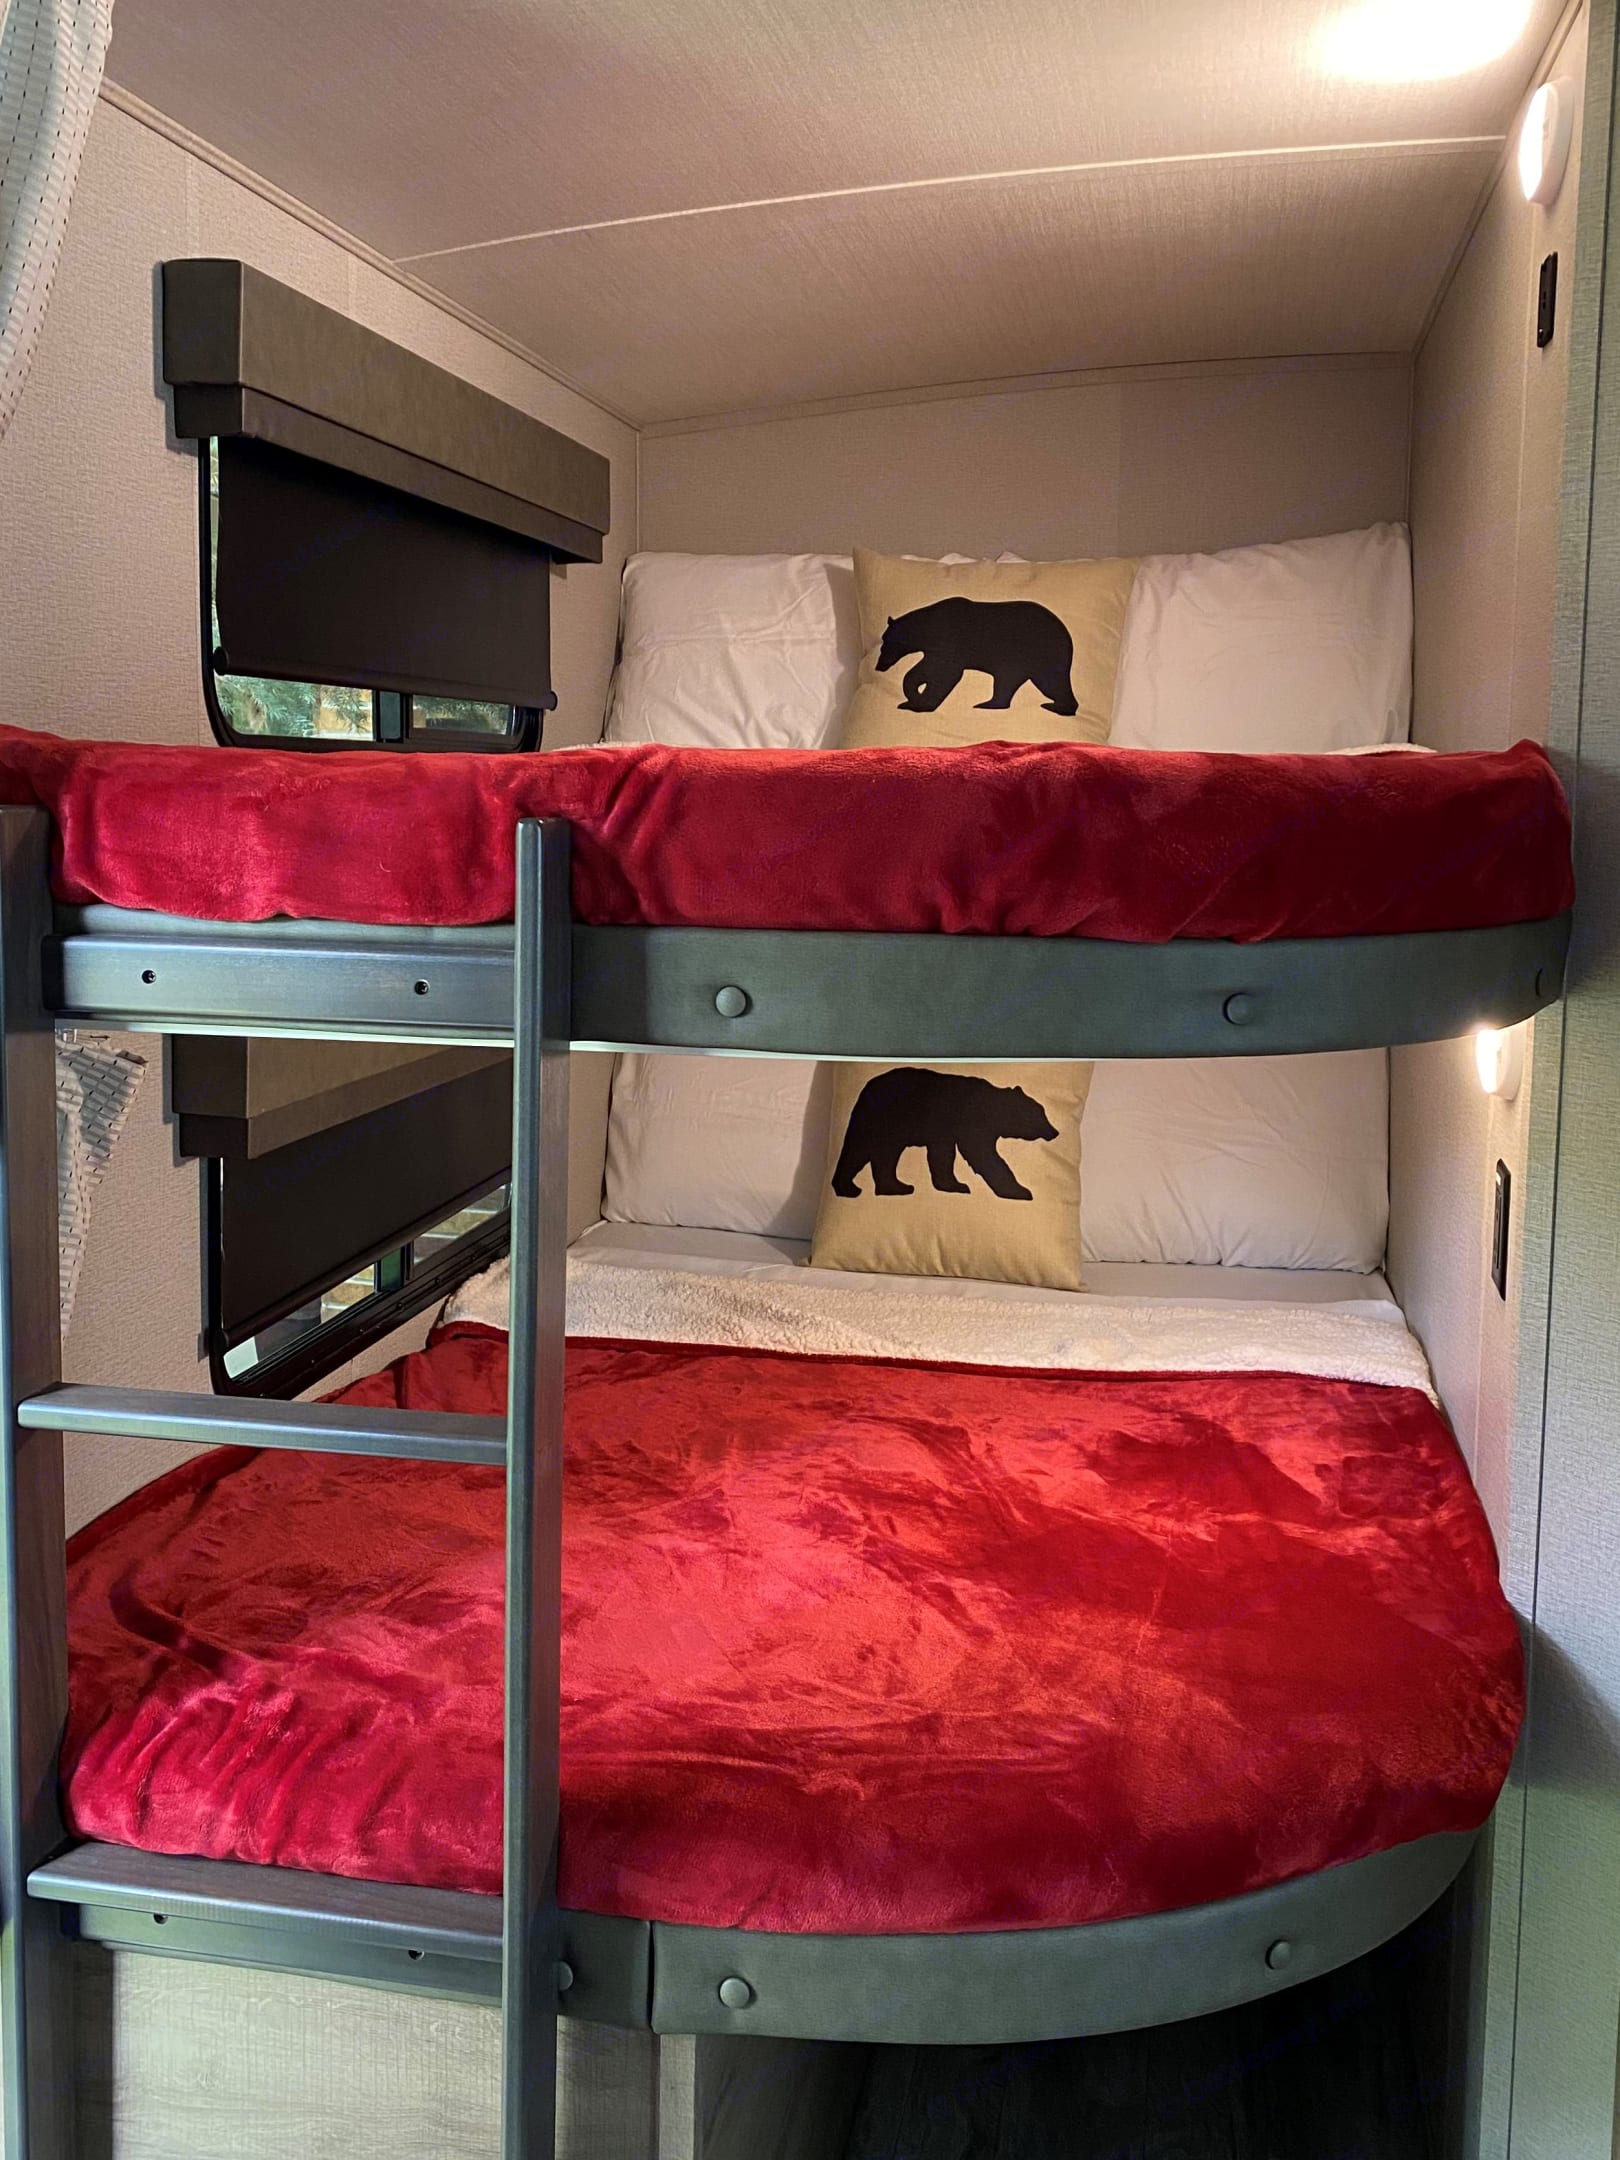 Bunkhouse with double beds and built-in ladder. Each bed has privacy curtains, sliding exterior window, USB outlet and personal light fixture.. Grand Design Imagine 2400BH 2021